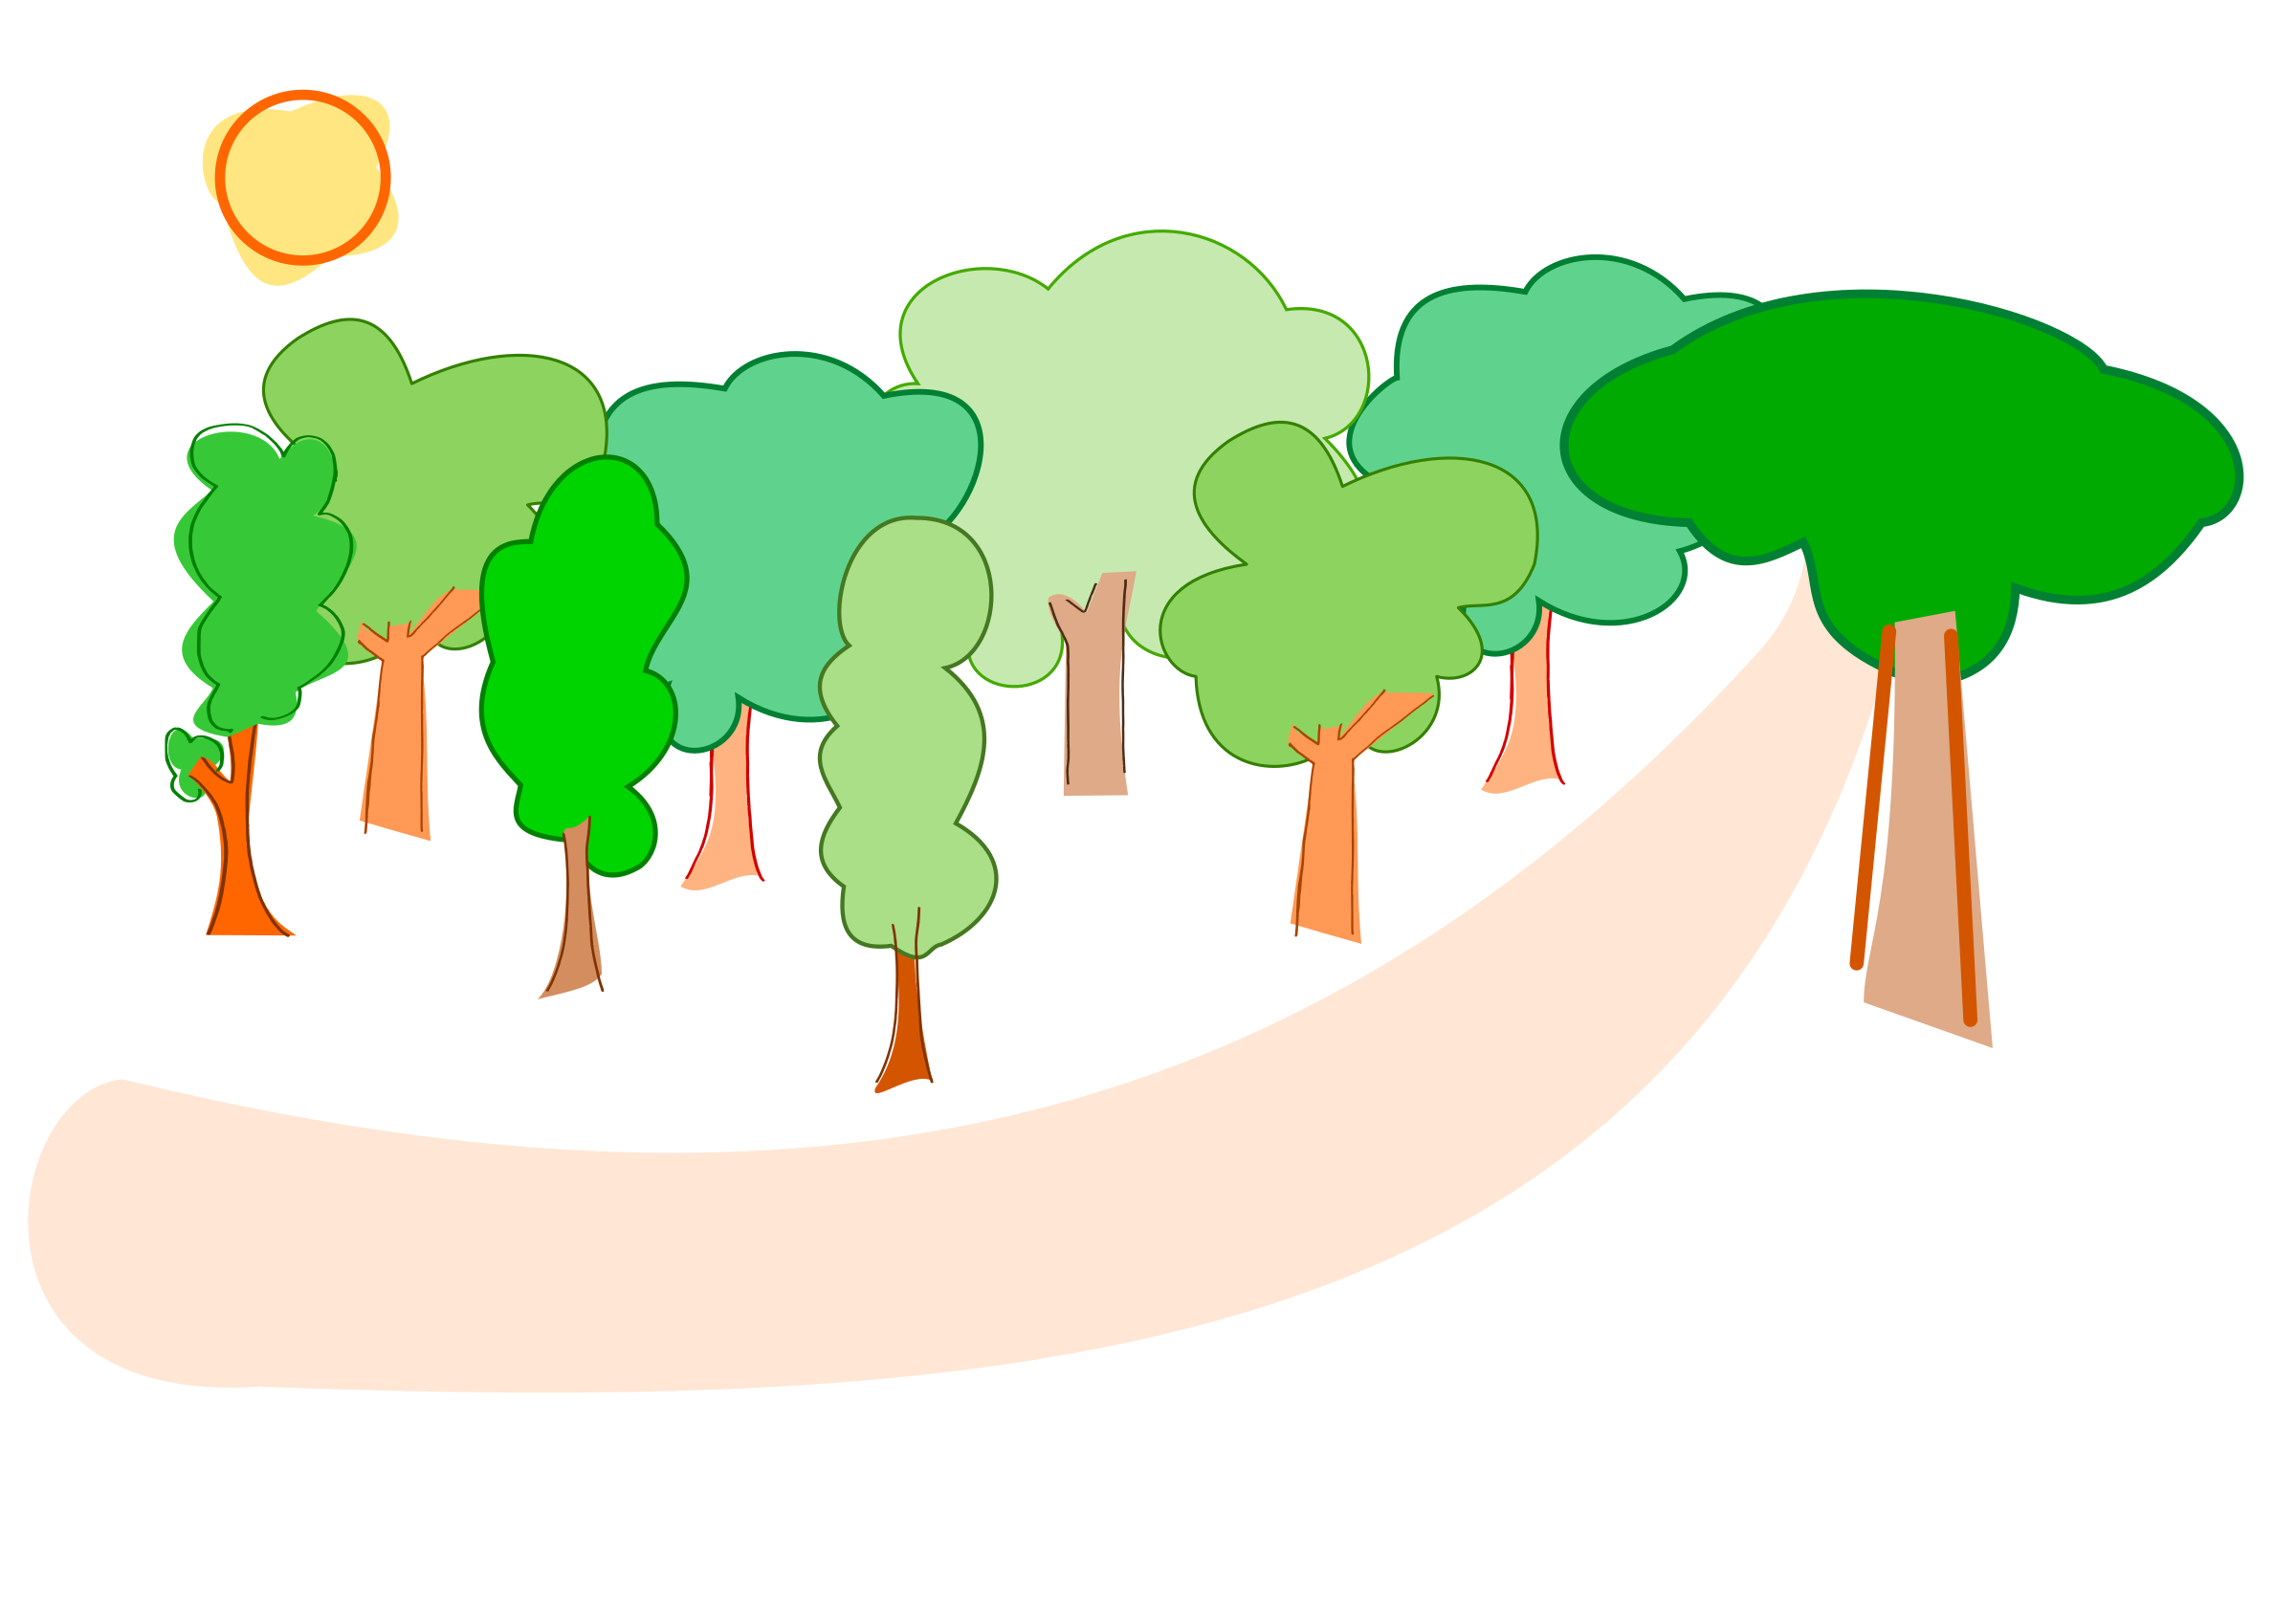 Forest clipart forest path. Collection of free brize